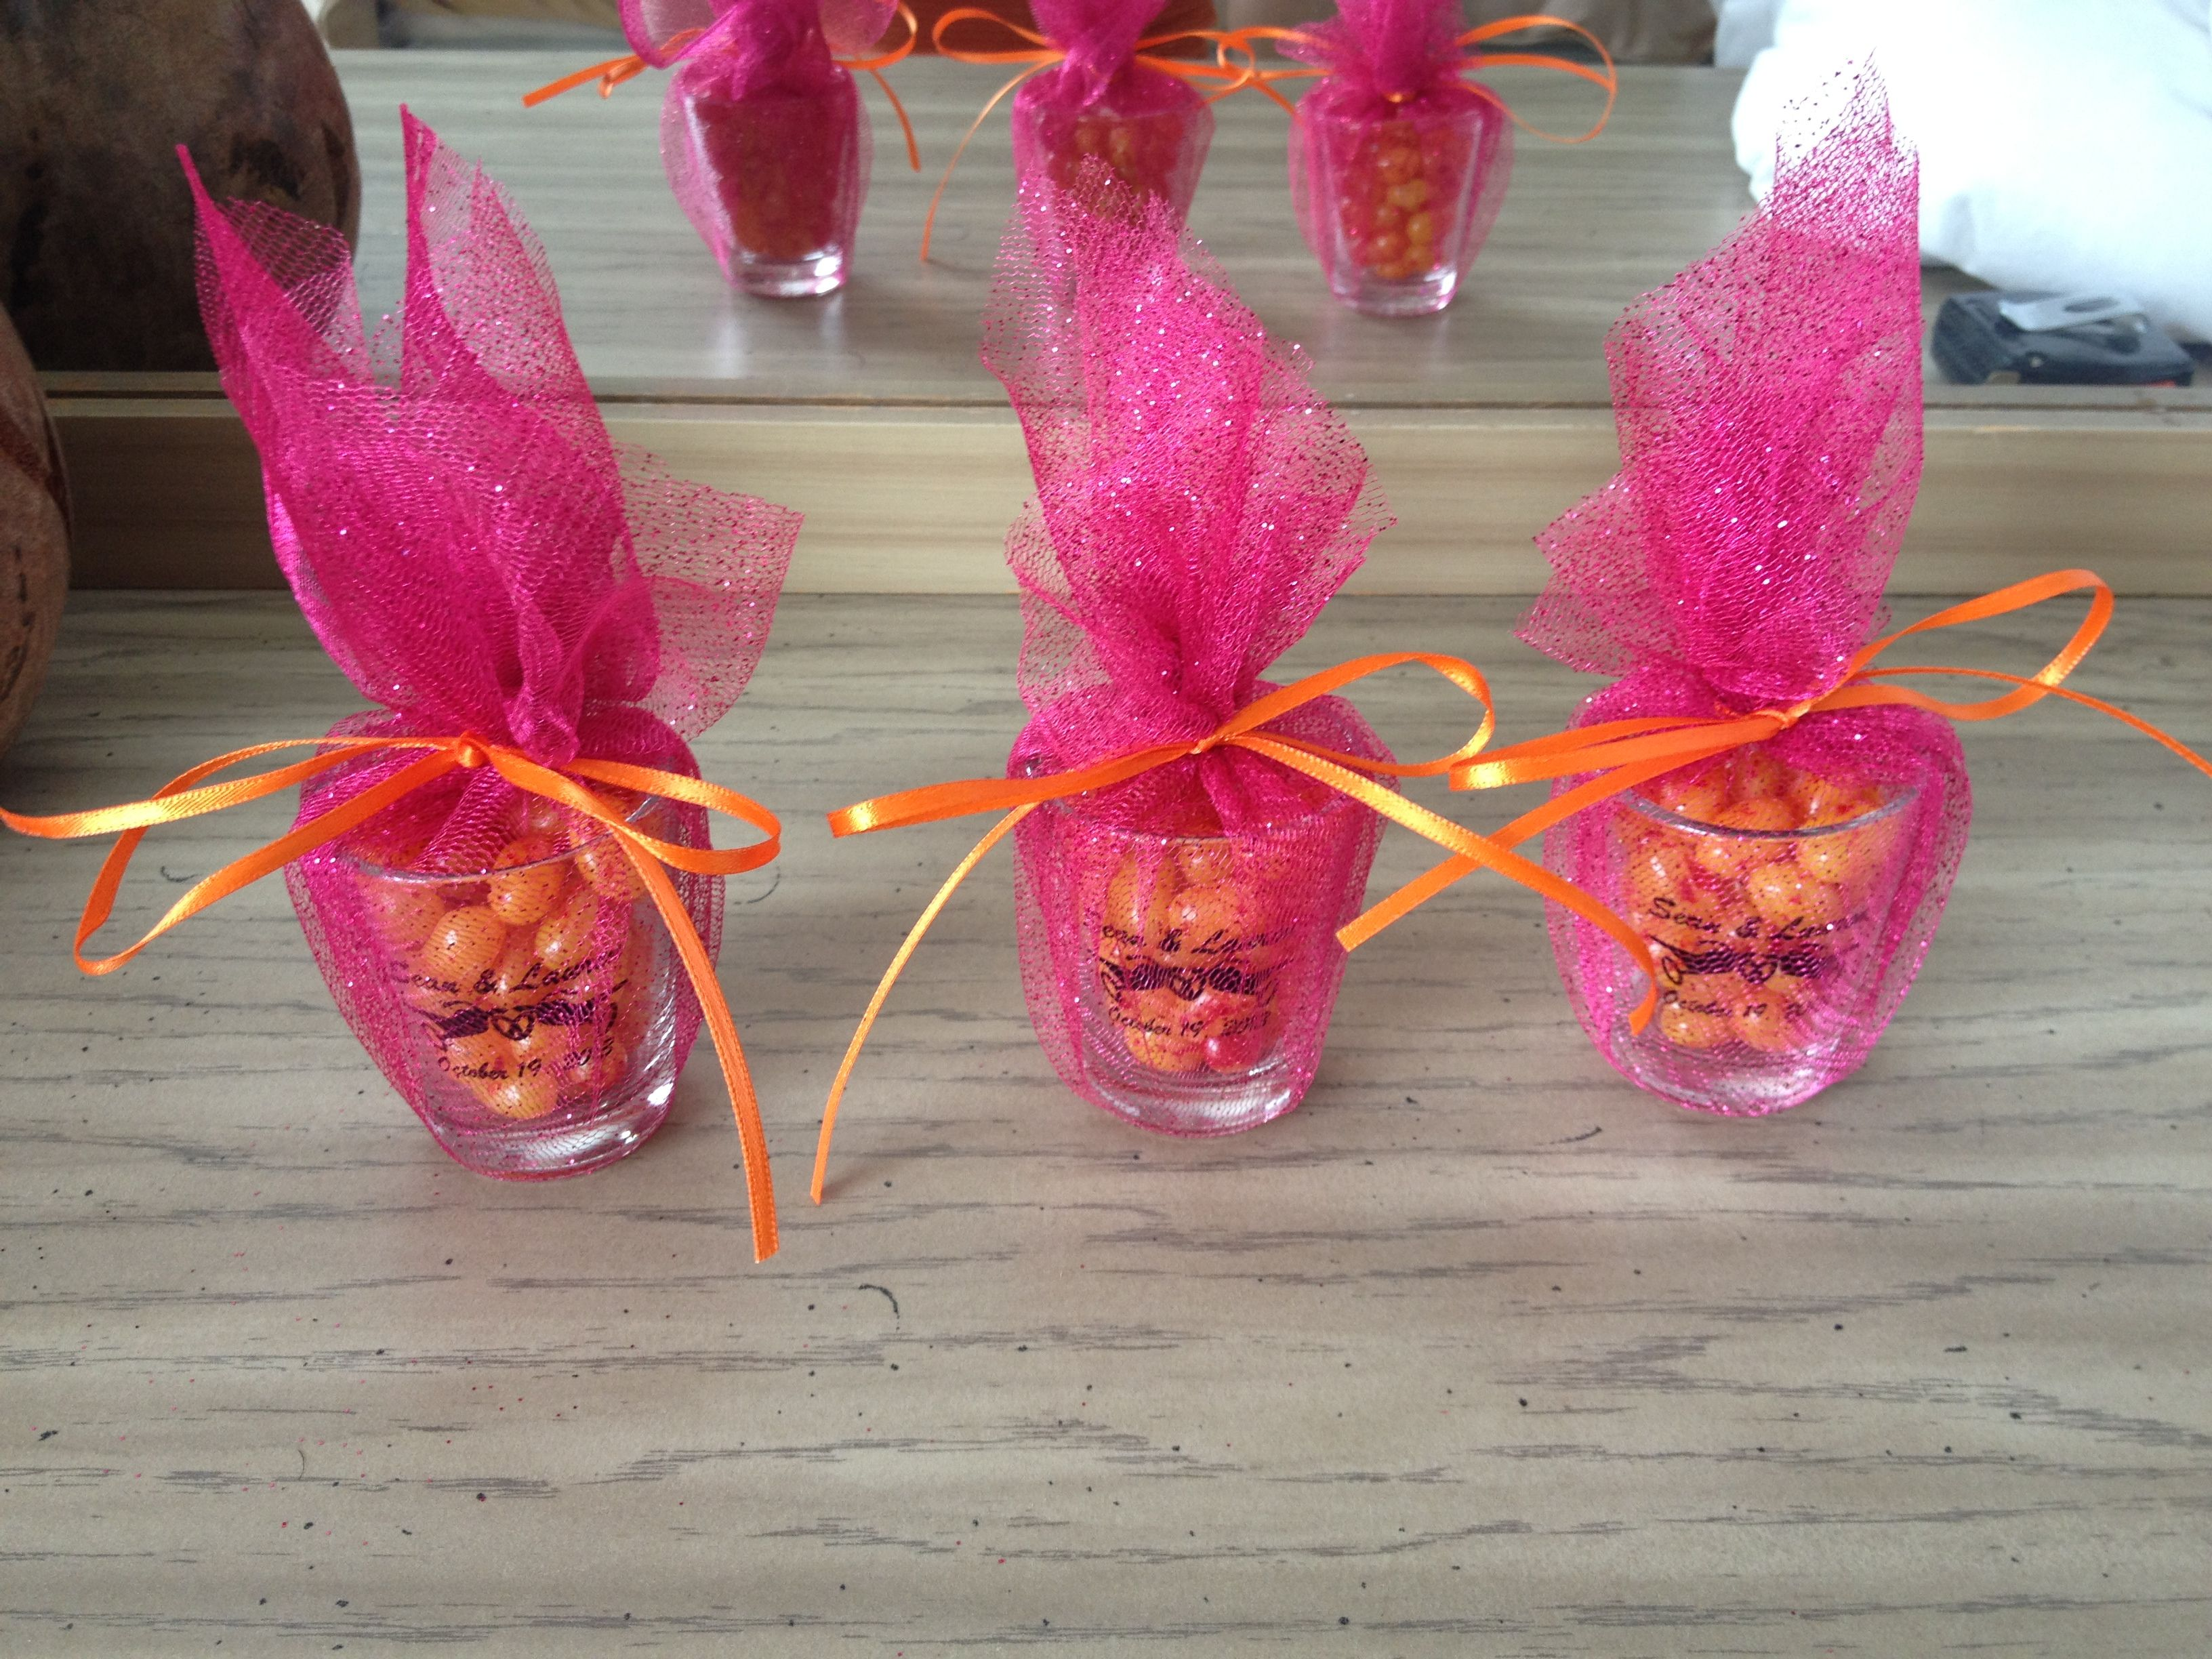 Wedding Favors Custom Shot Glasses With Peach Jelly Bellies